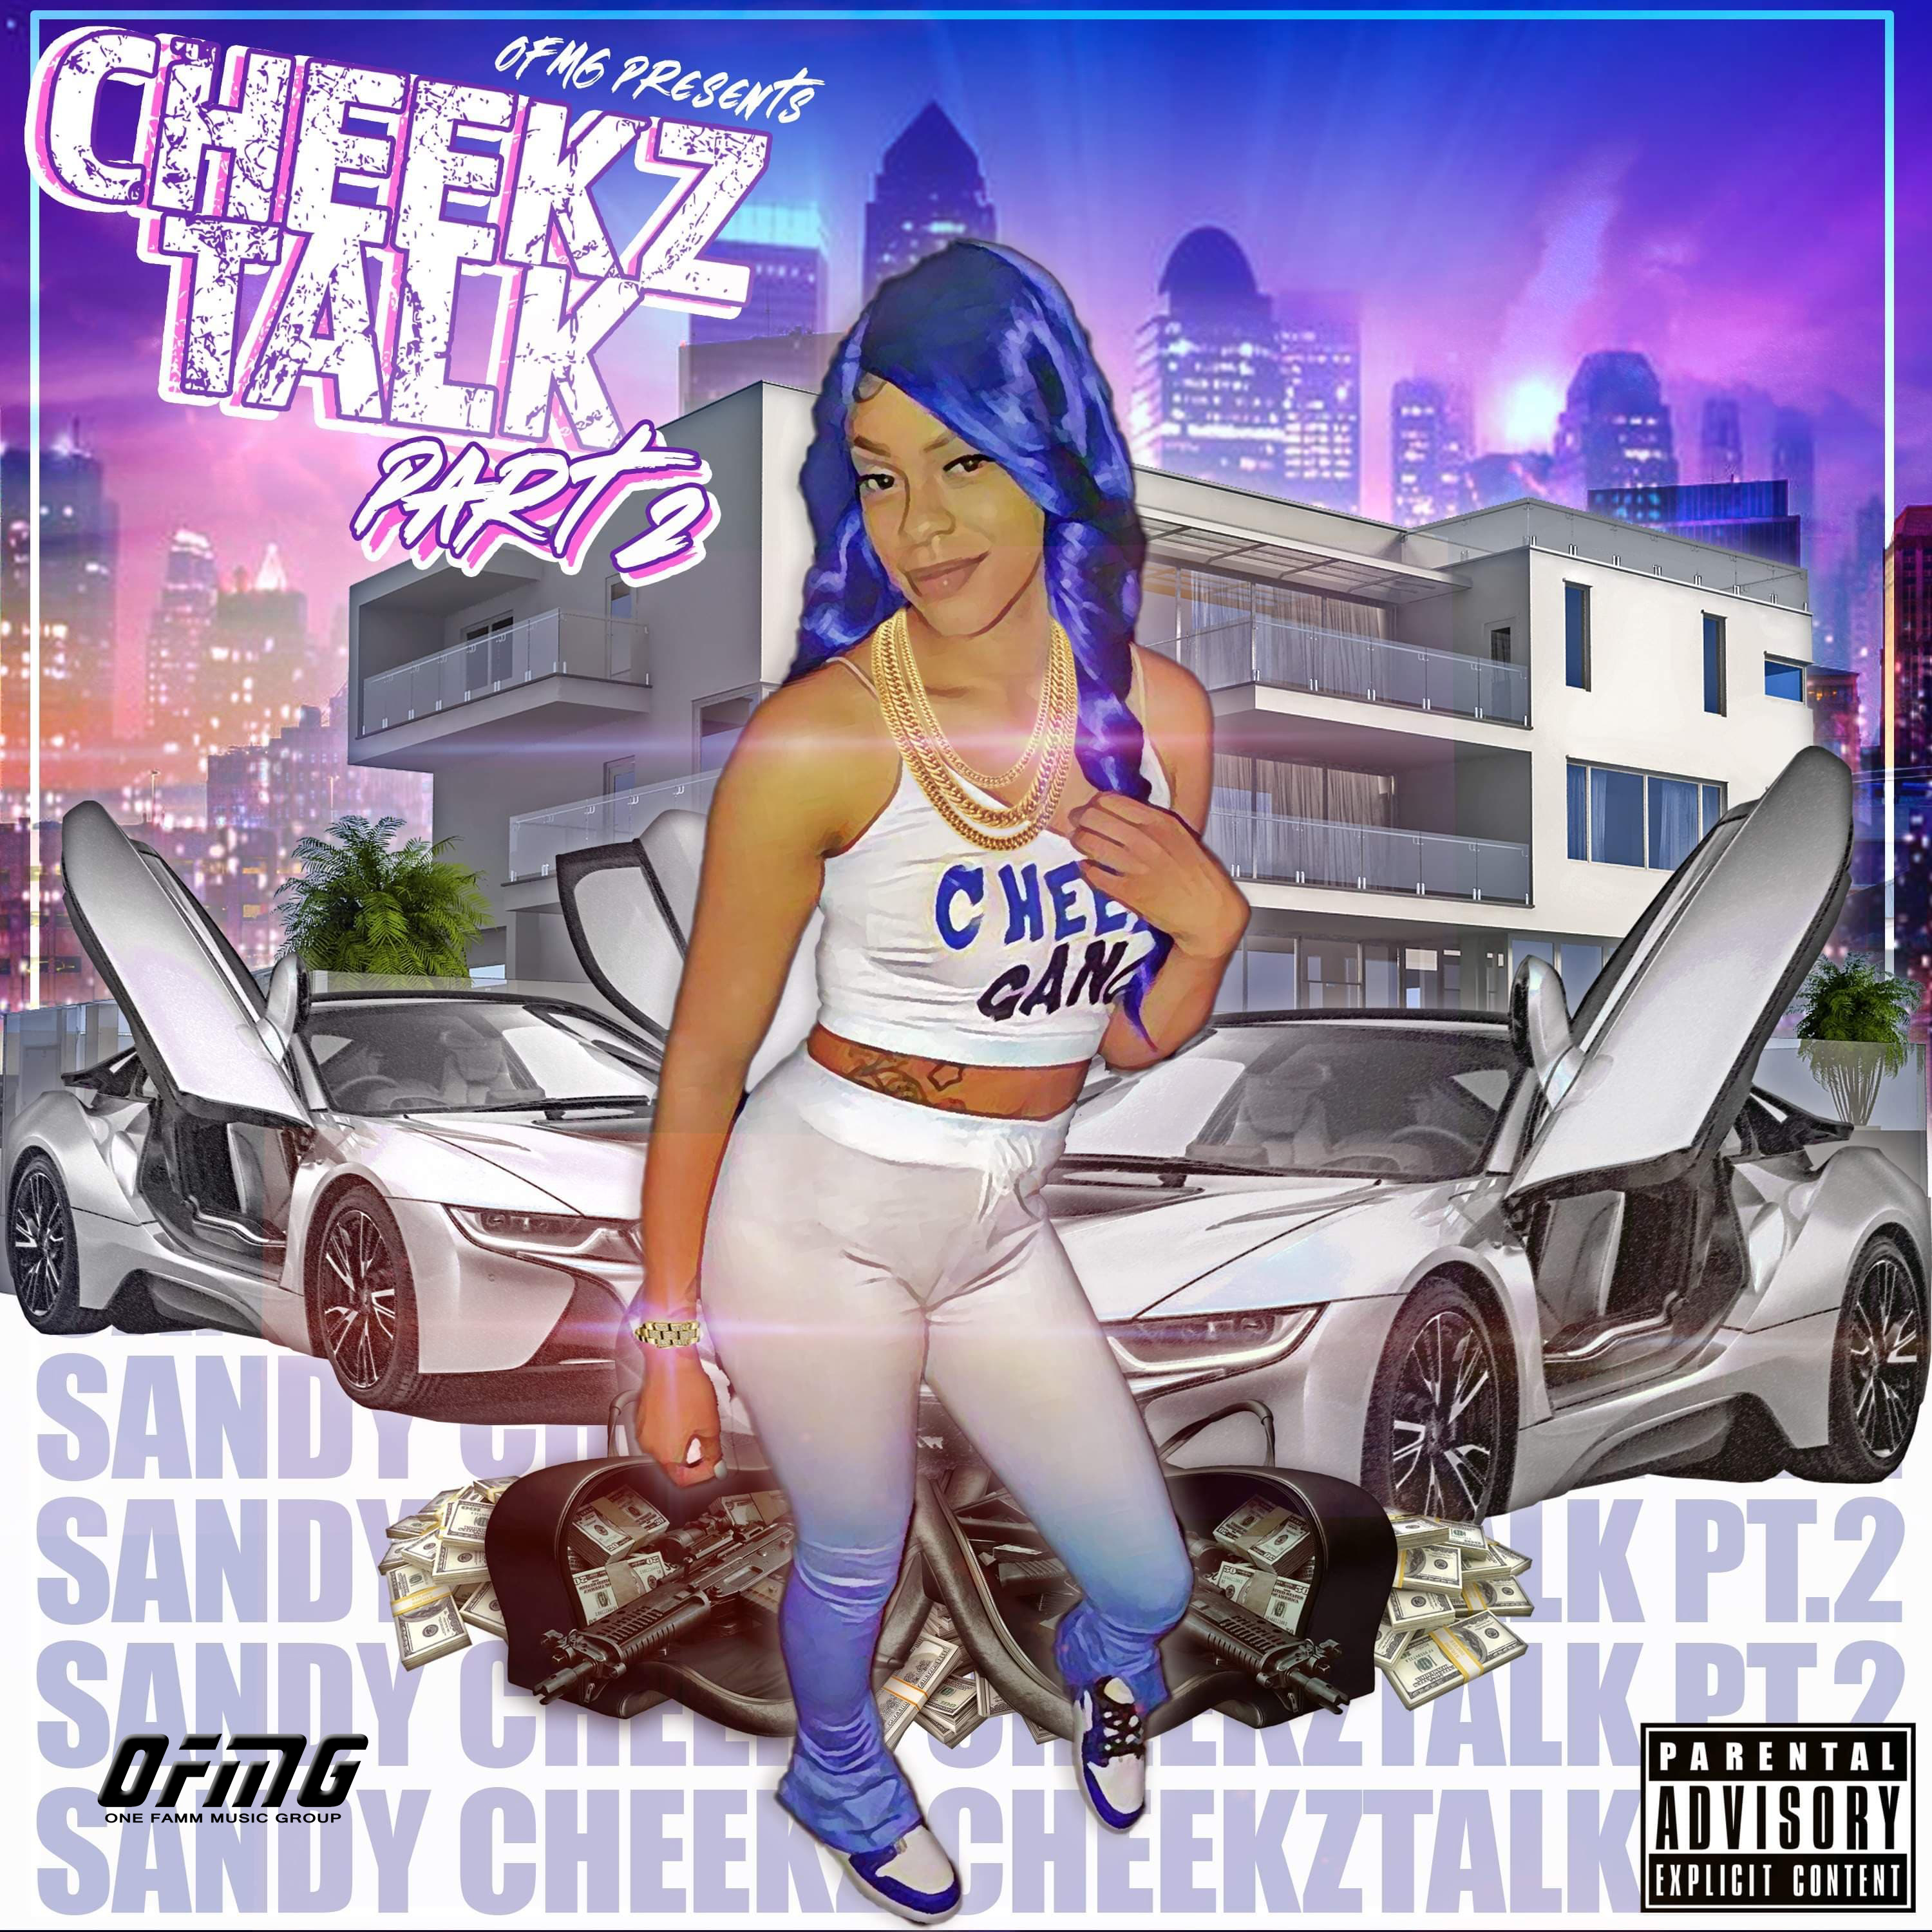 Cheekz Talk Pt2 Artwork Final